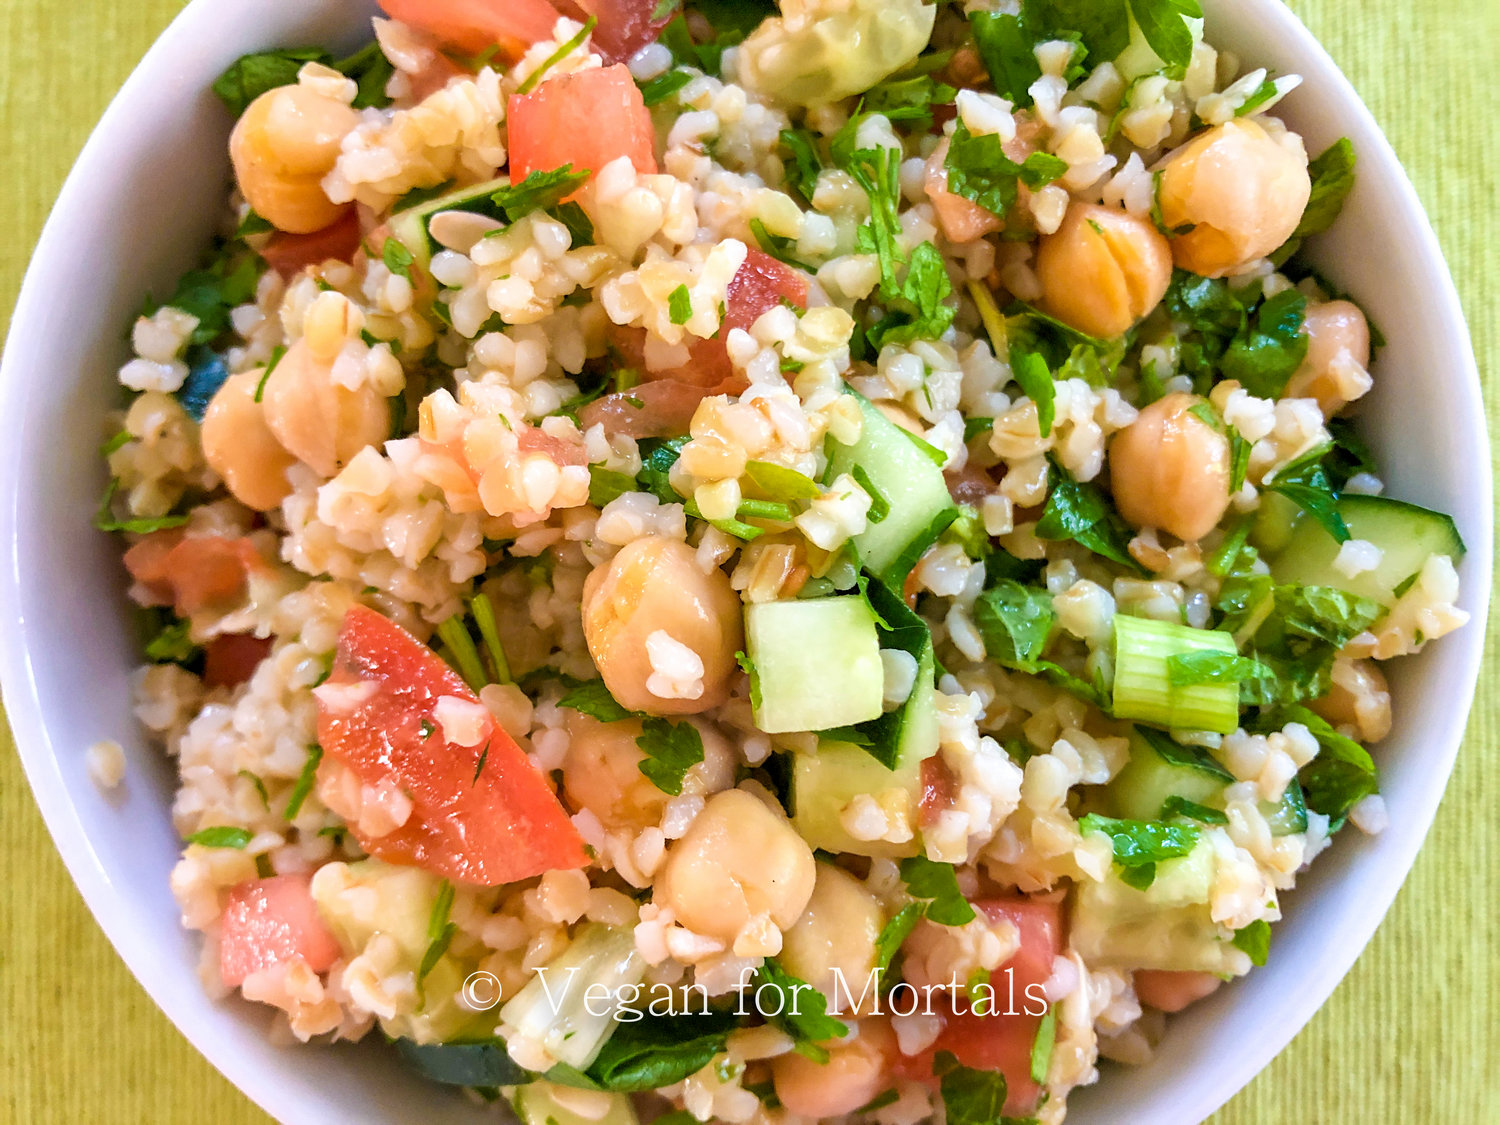 Tabbouleh - Tabbouleh is such a simple salad that packs a ton of flavor and nutrients. This is great for a pot luck or for lunches throughout the week. I also like to fill up pita bread with hummus, lettuce, and a couple scoopfuls of tabbouleh!